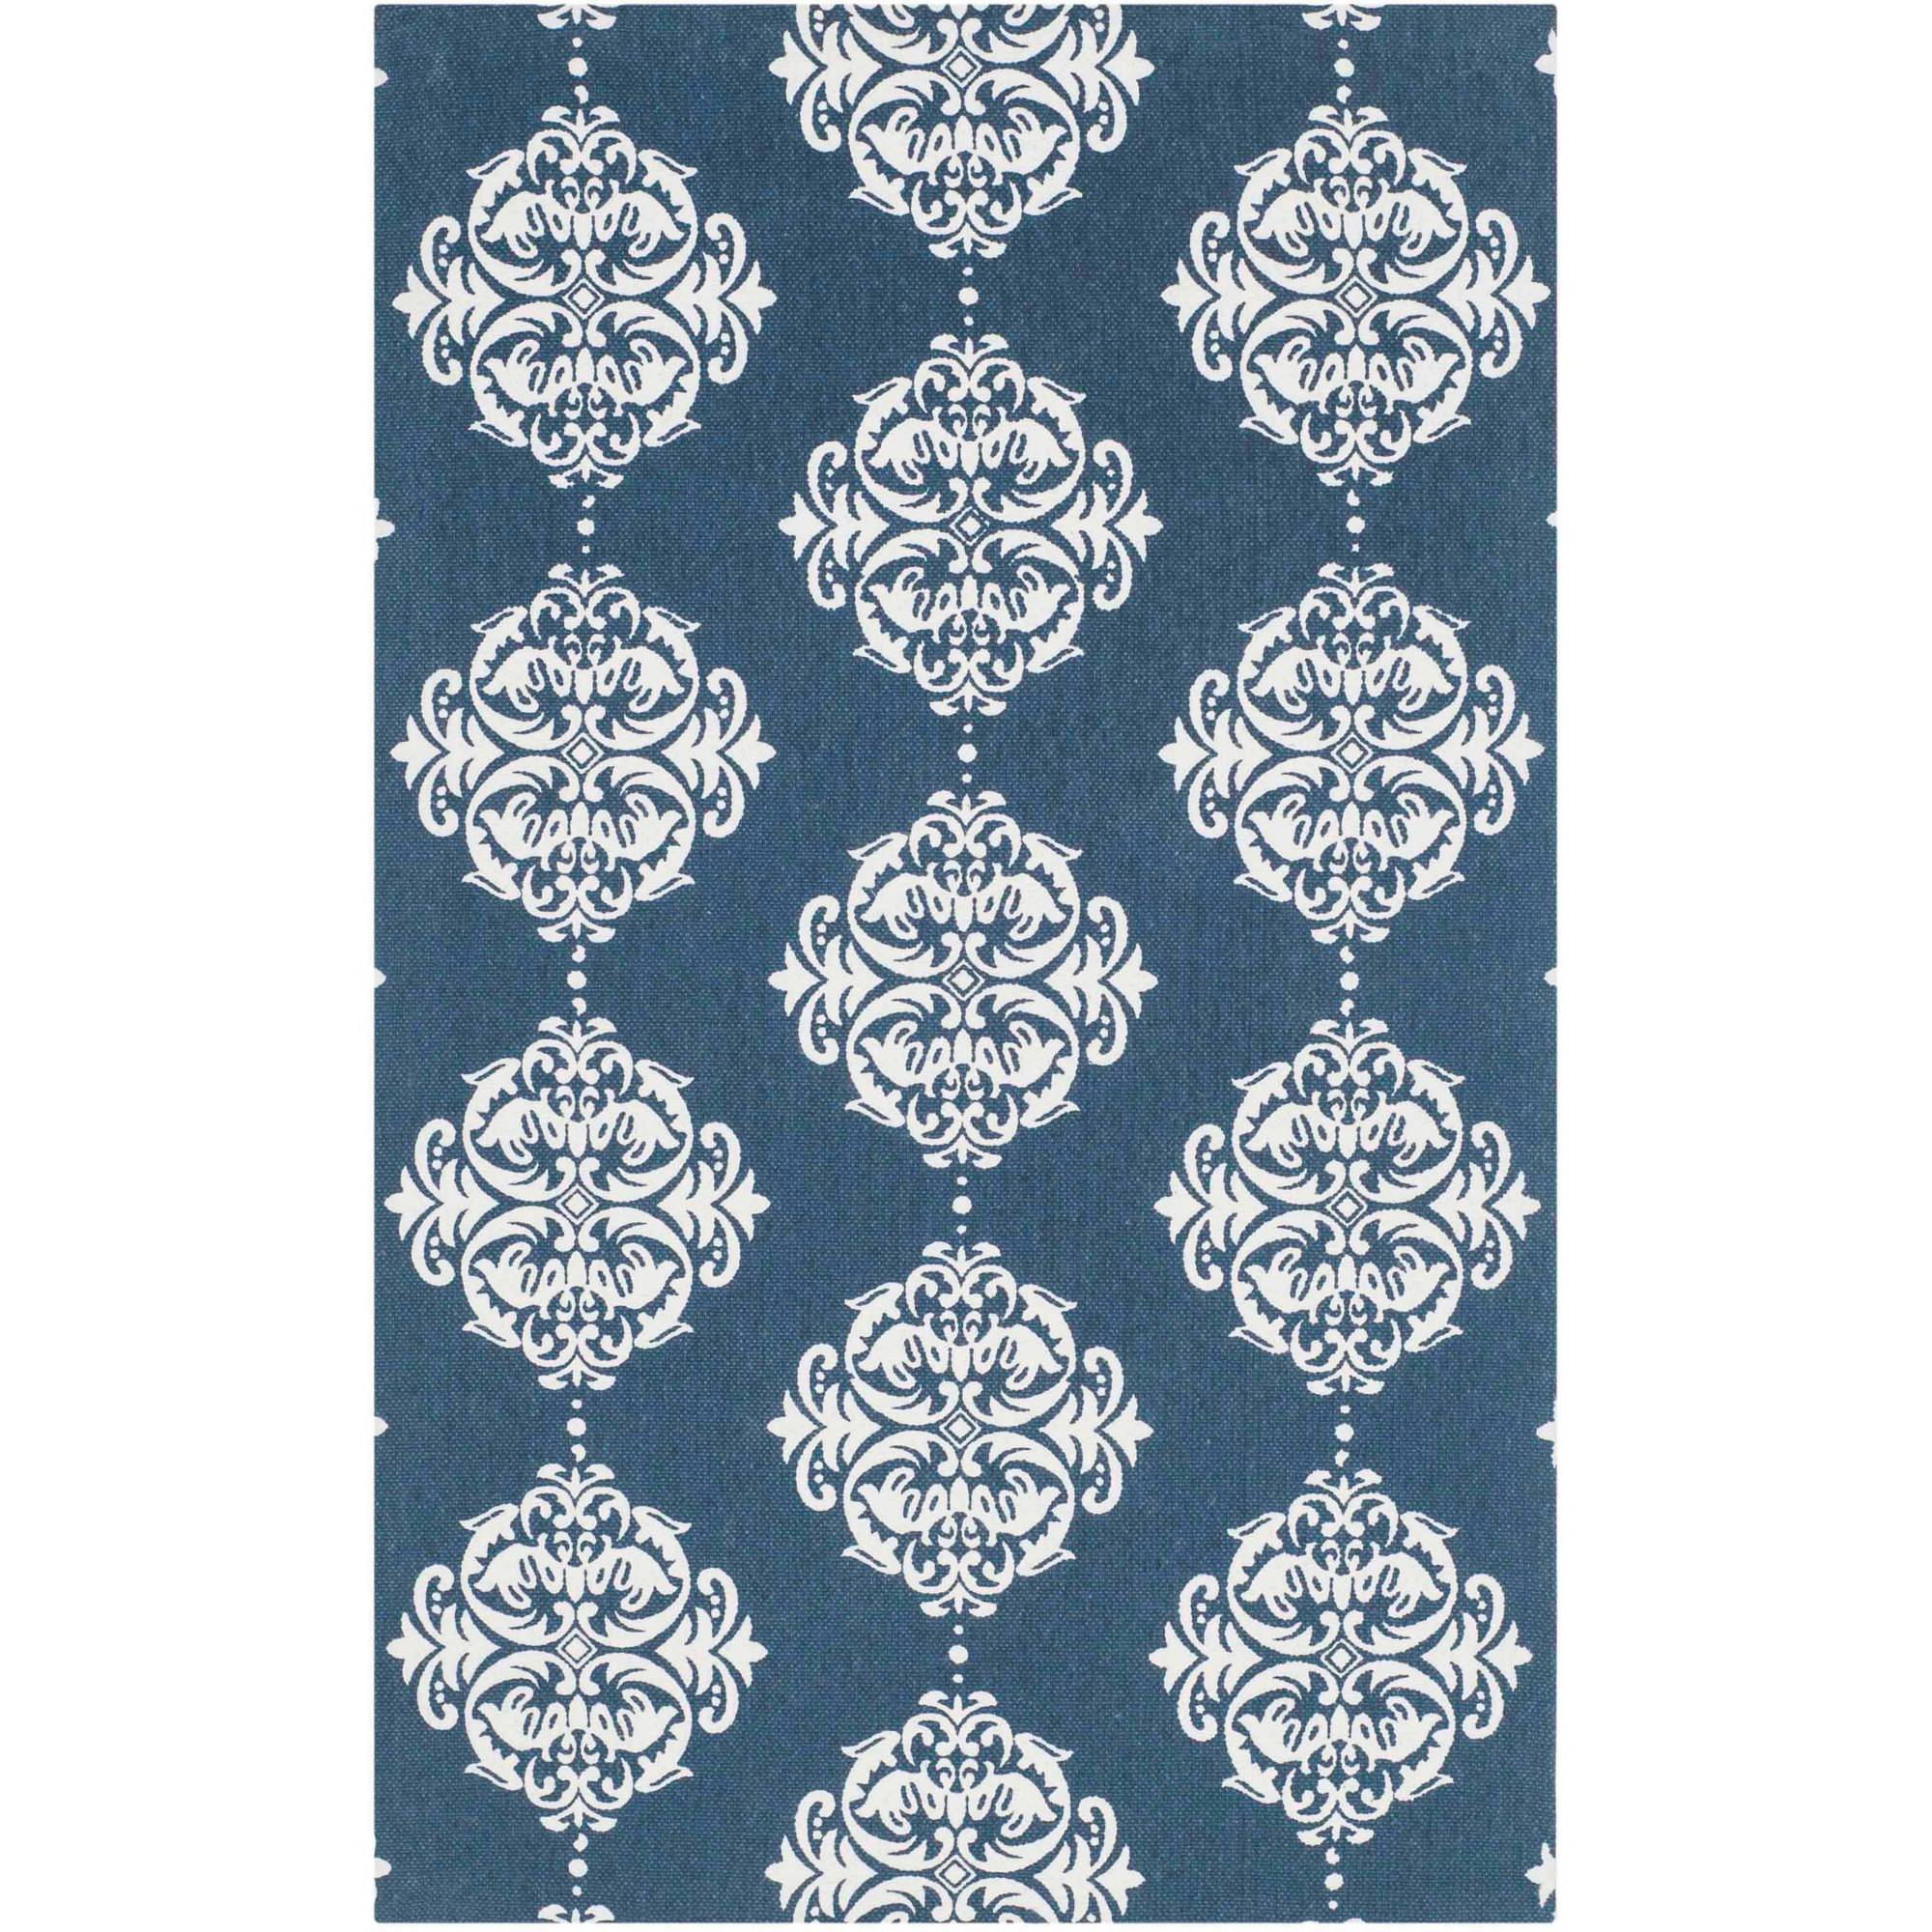 Safavieh Cedar Brook Hildred Hand Loomed Cotton Area Rug, Navy/Ivory